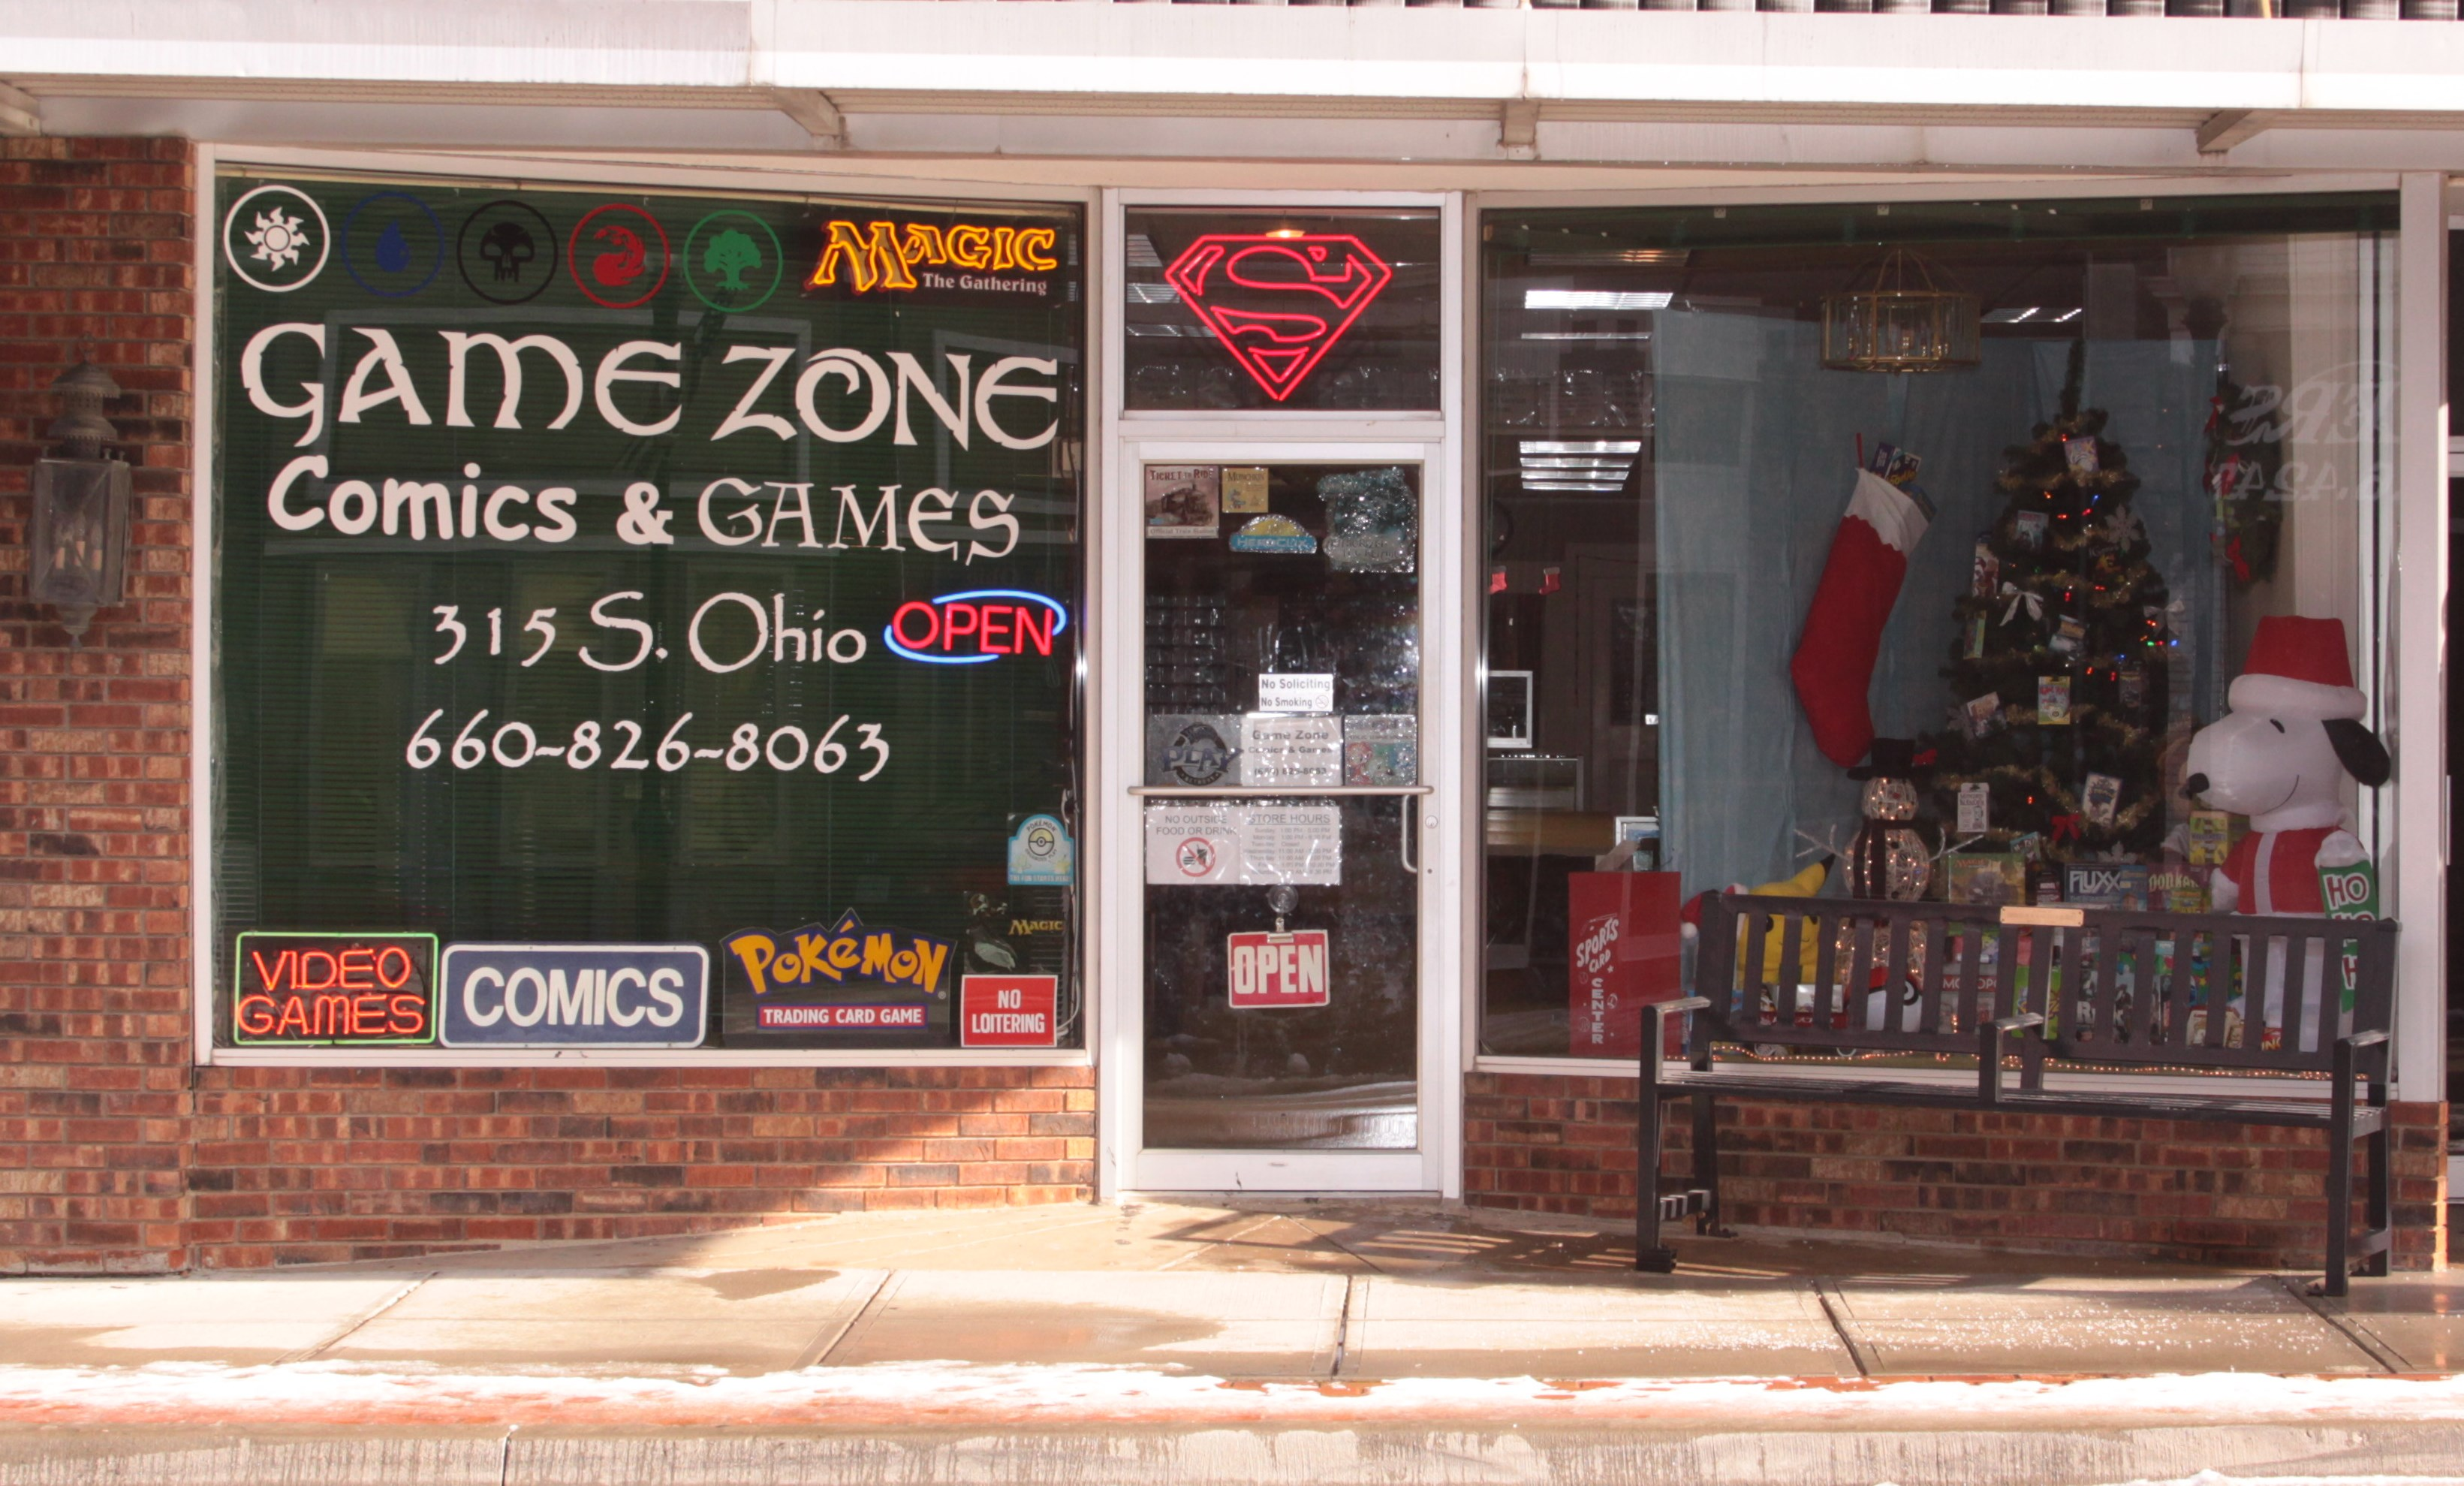 Game Zone Comics & Games